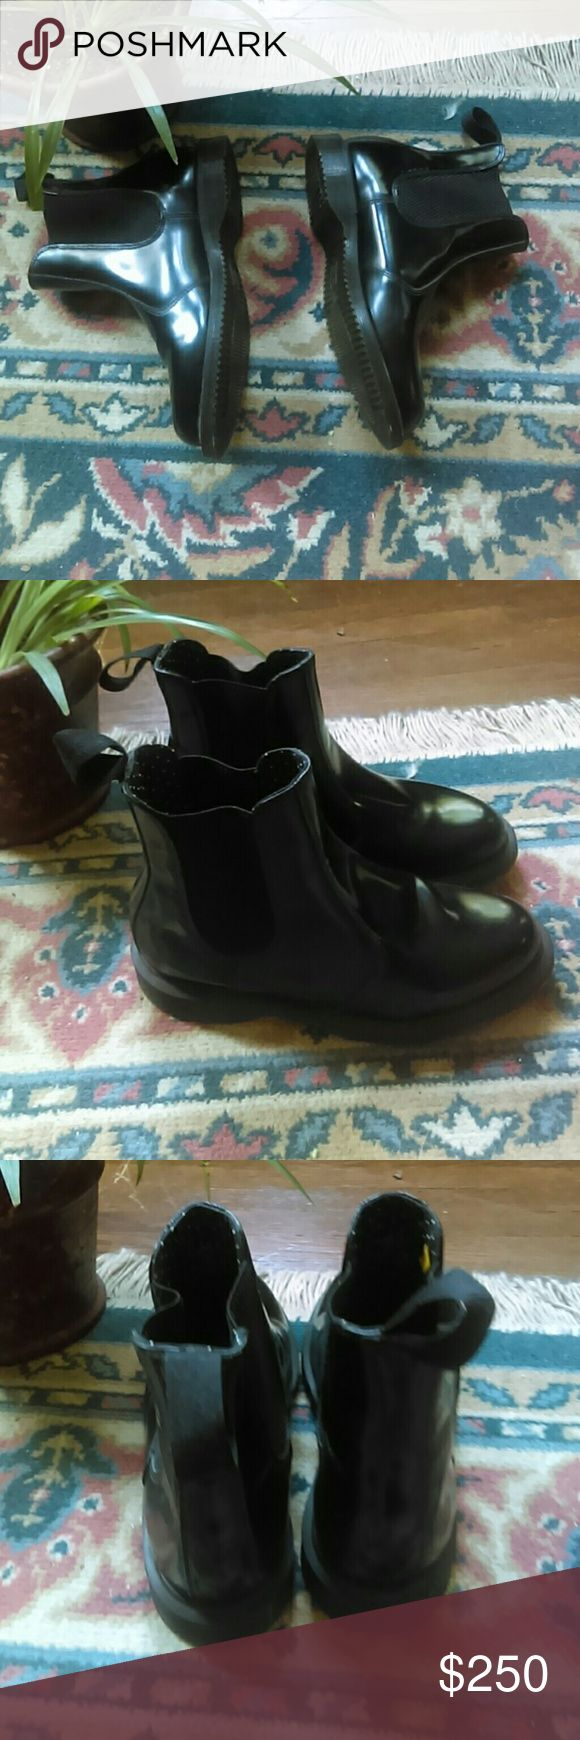 Dr Doc. Marten Black Chelsea Boots Dr. Doc. Marten Black Chelsea Boots Size Us 5L Like new theres a peice of the sole that is missing for some reason as seen in pictures but other than that they are like new!great amazing condition! Dr. Martens Shoes Winter & Rain Boots